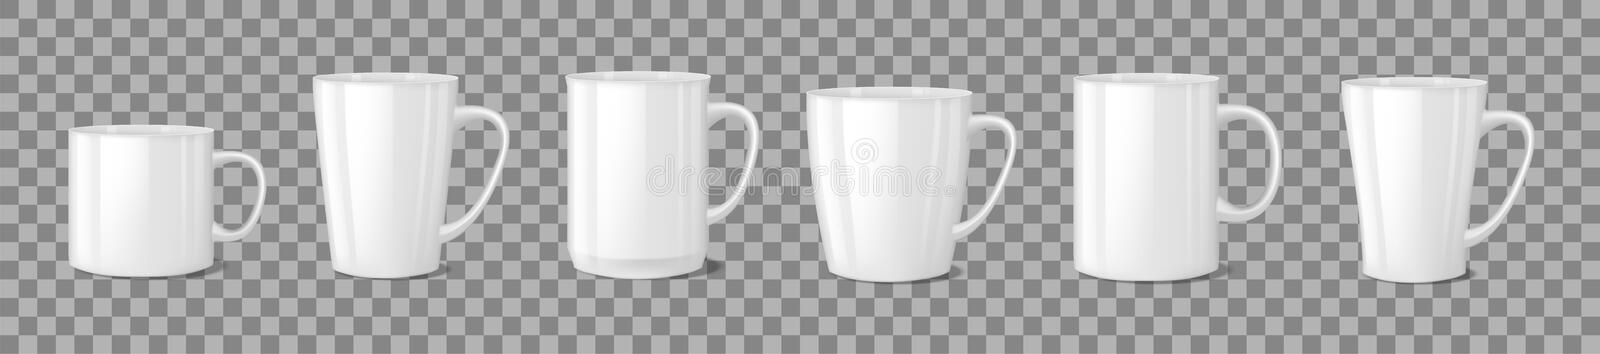 Realistic blank white coffee mug cups on transparent background. Cup template mockup isolated. teacup for breakfast vector illustration